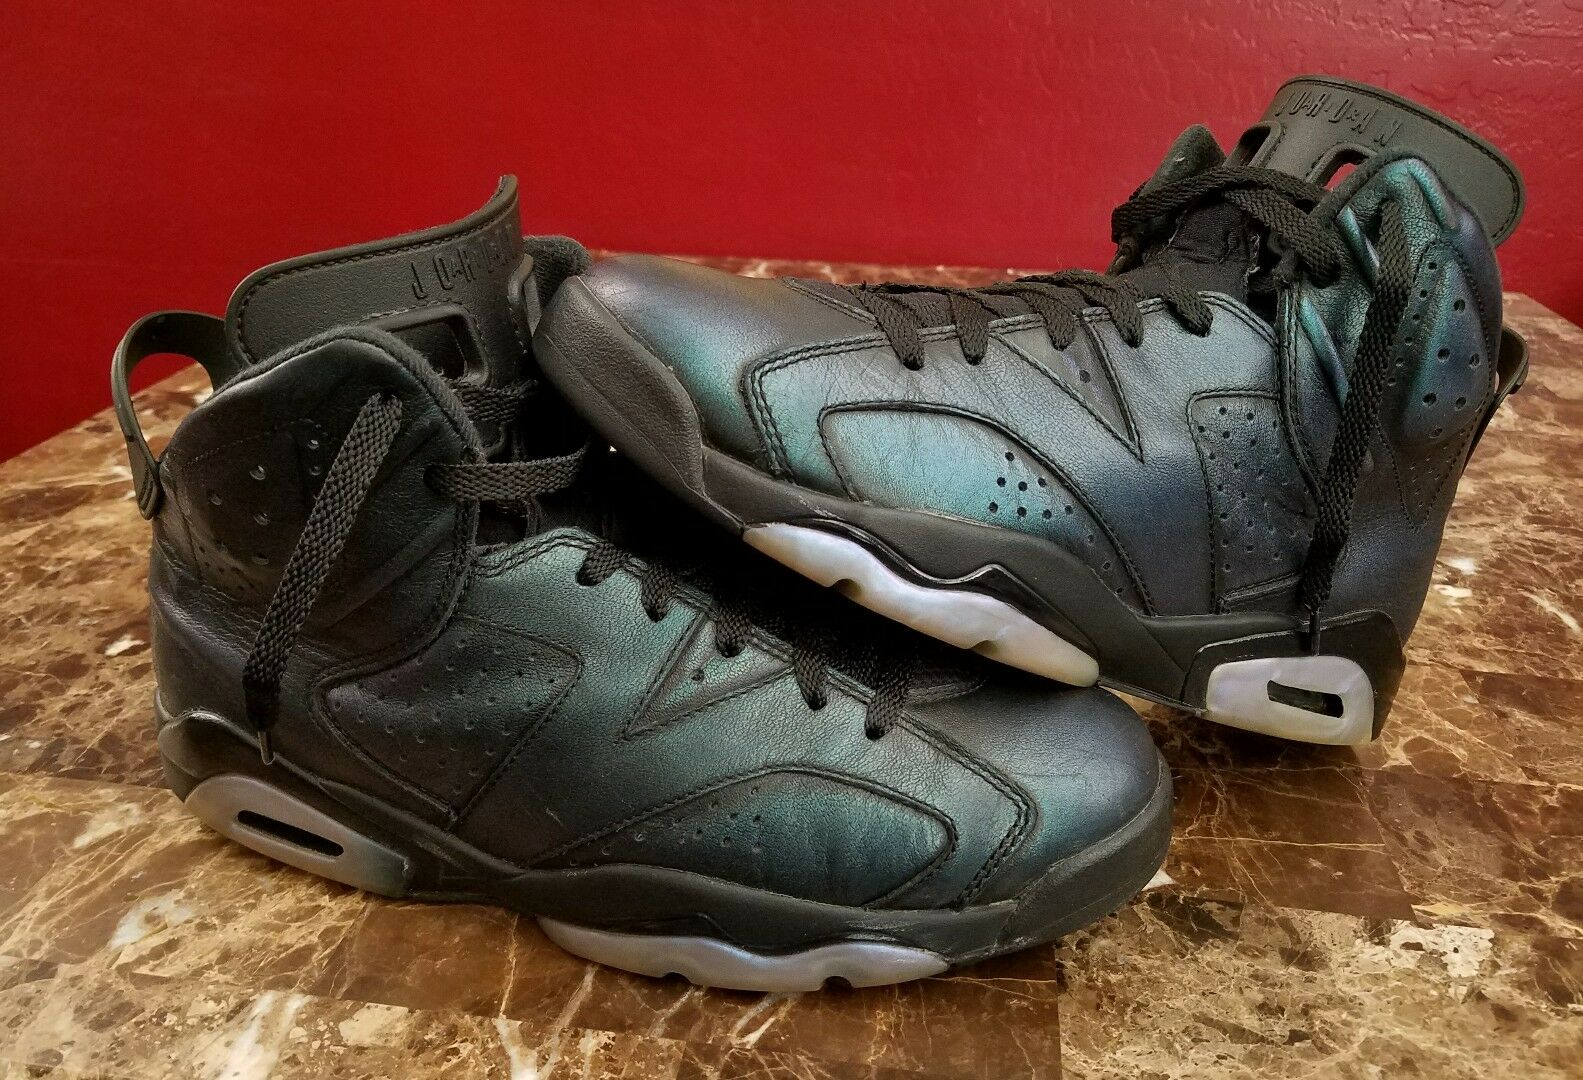 Air Jordan 6 VI Retro All Star Chameleon Uomo sz 10.5 Basketball Shoes   da Ginnastica